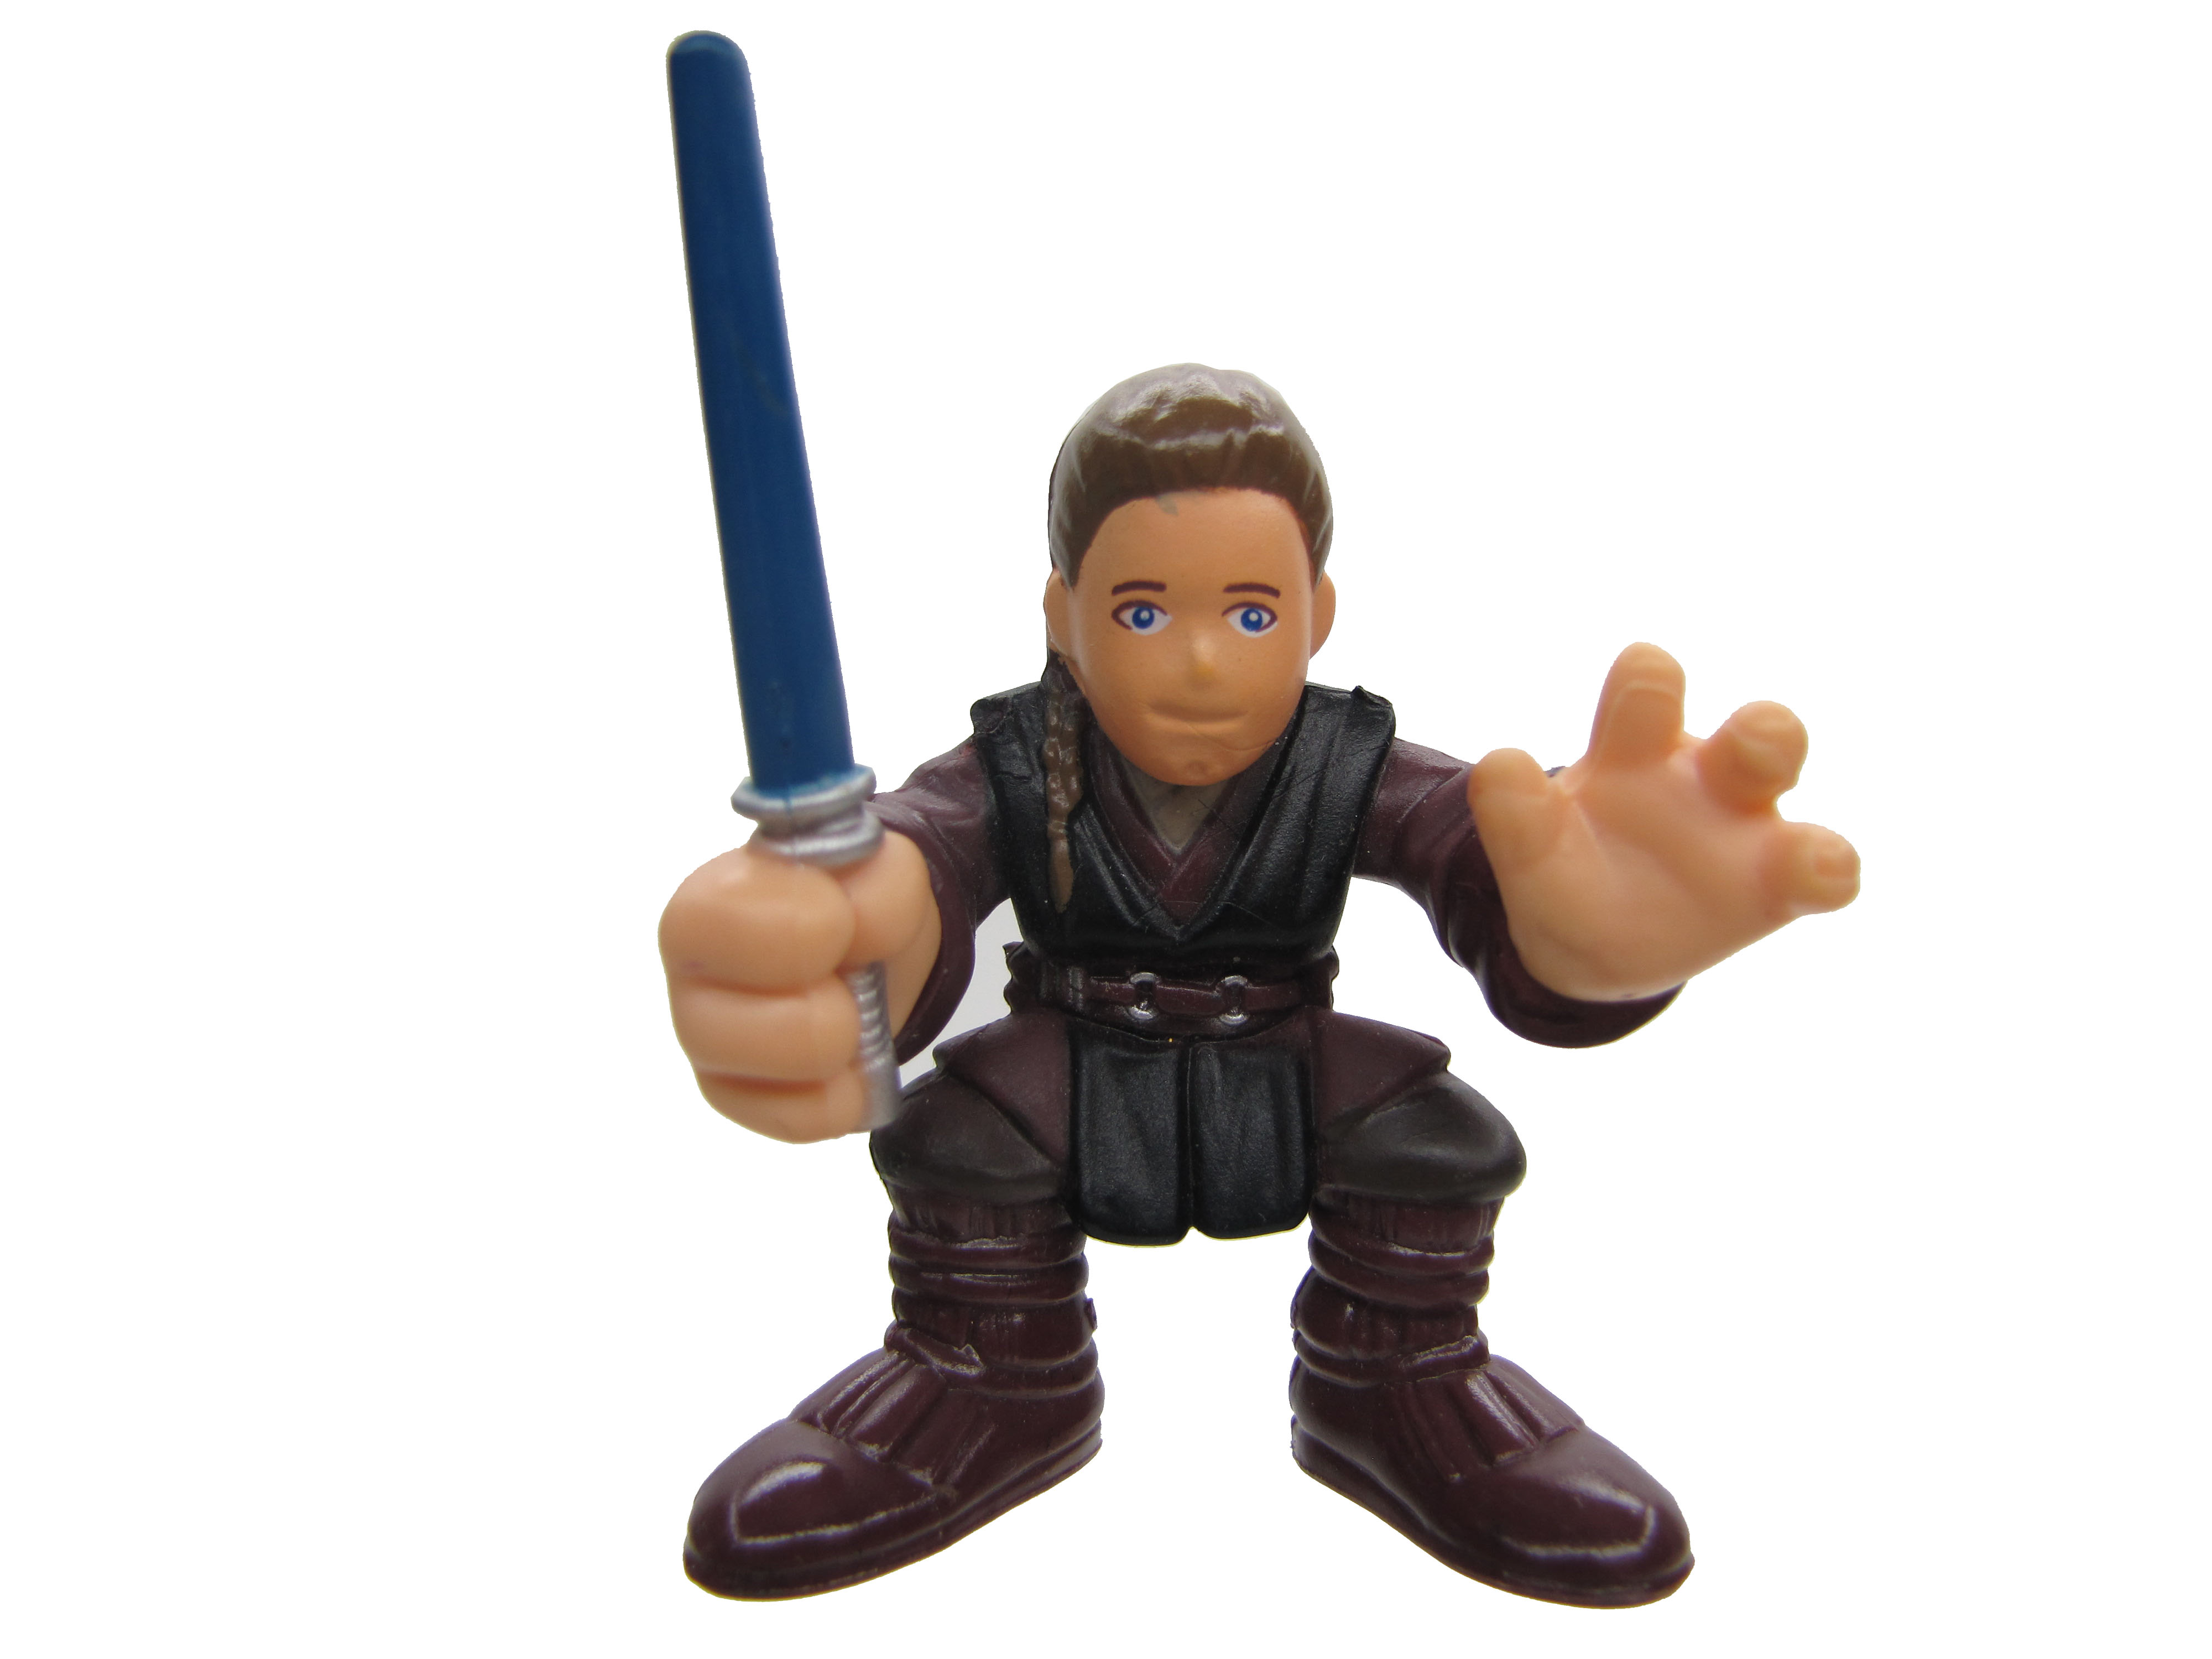 Star Wars Galactic Heroes GEONOSIS ARENA ENCOUNTER ANAKIN SKYWAL